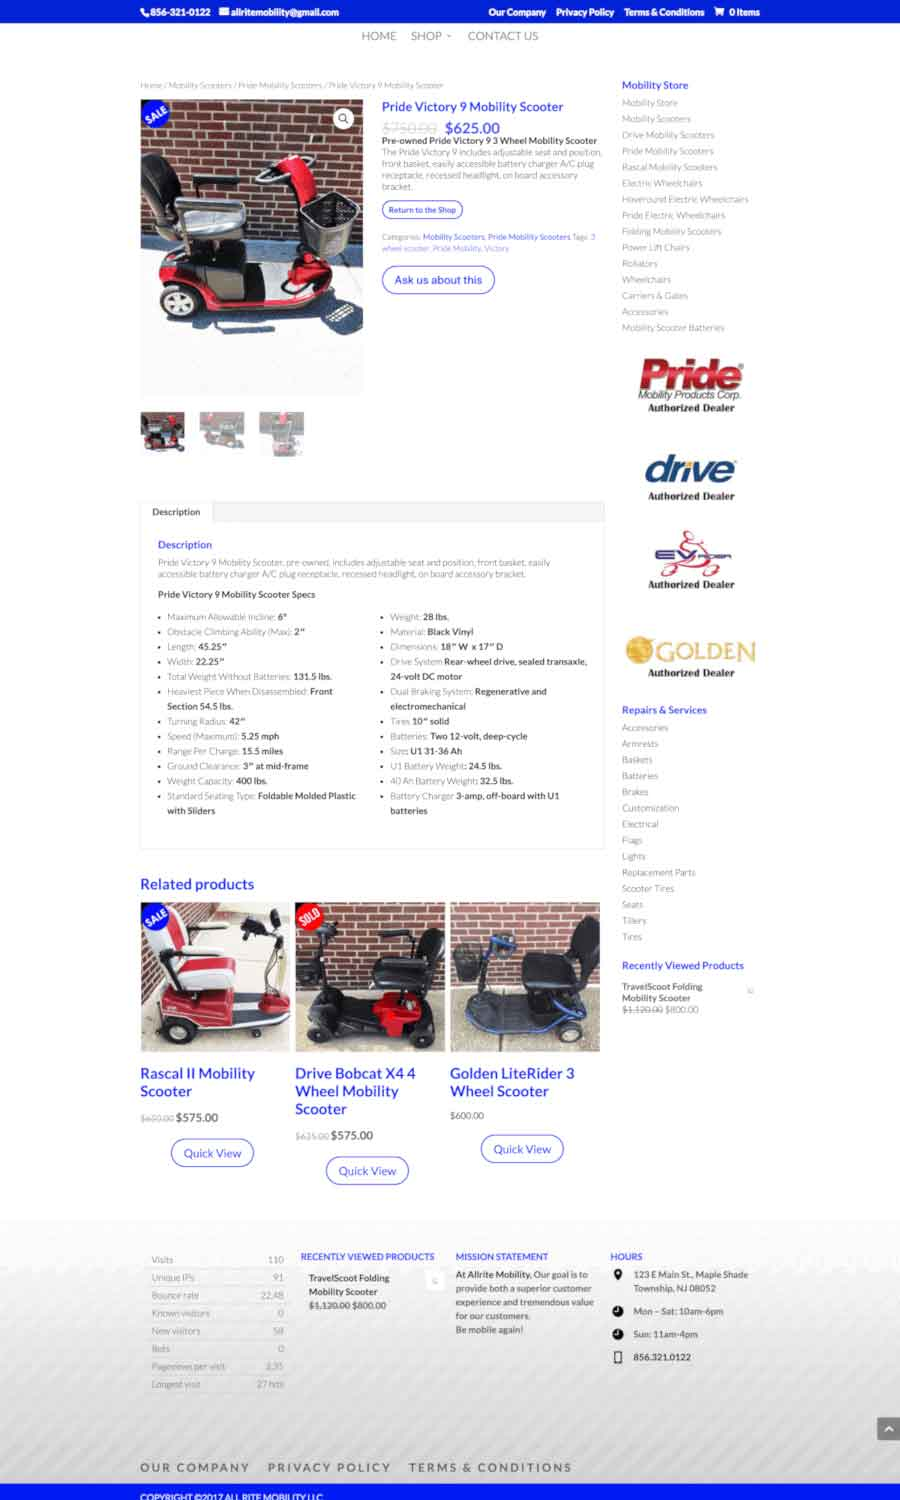 Allrite Mobility: Product Detail Page